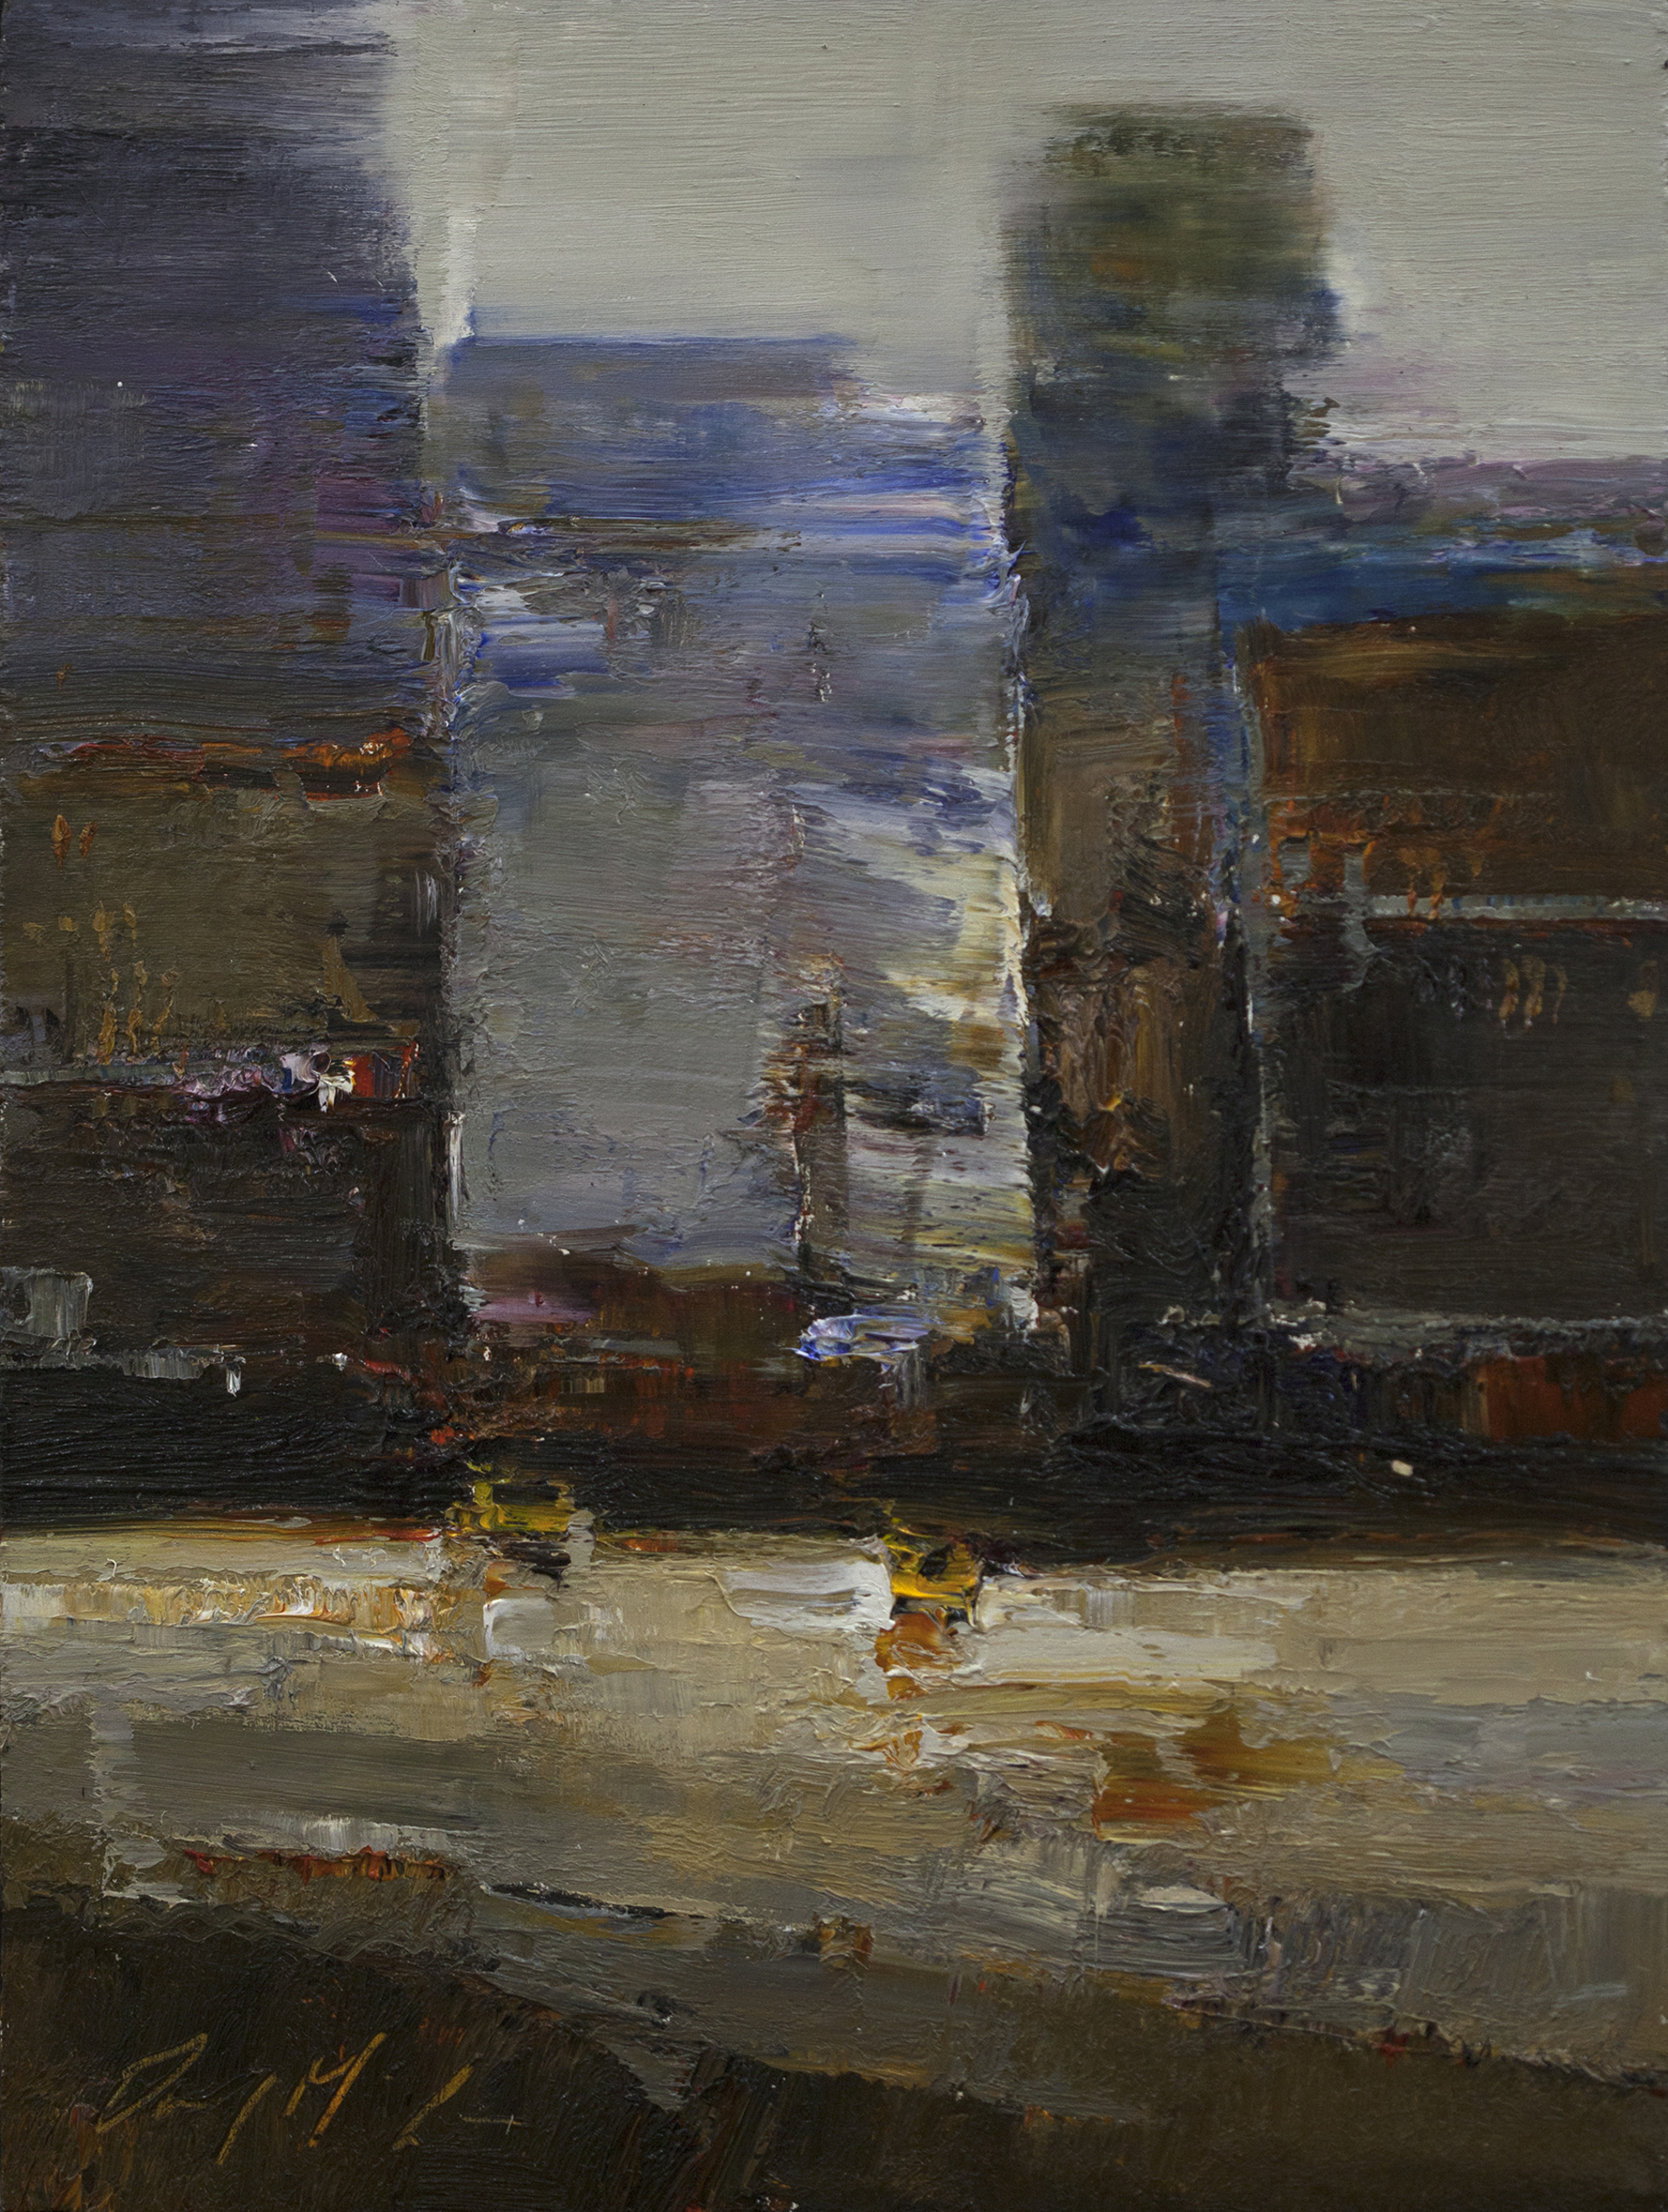 Abstract City by Danny McCaw